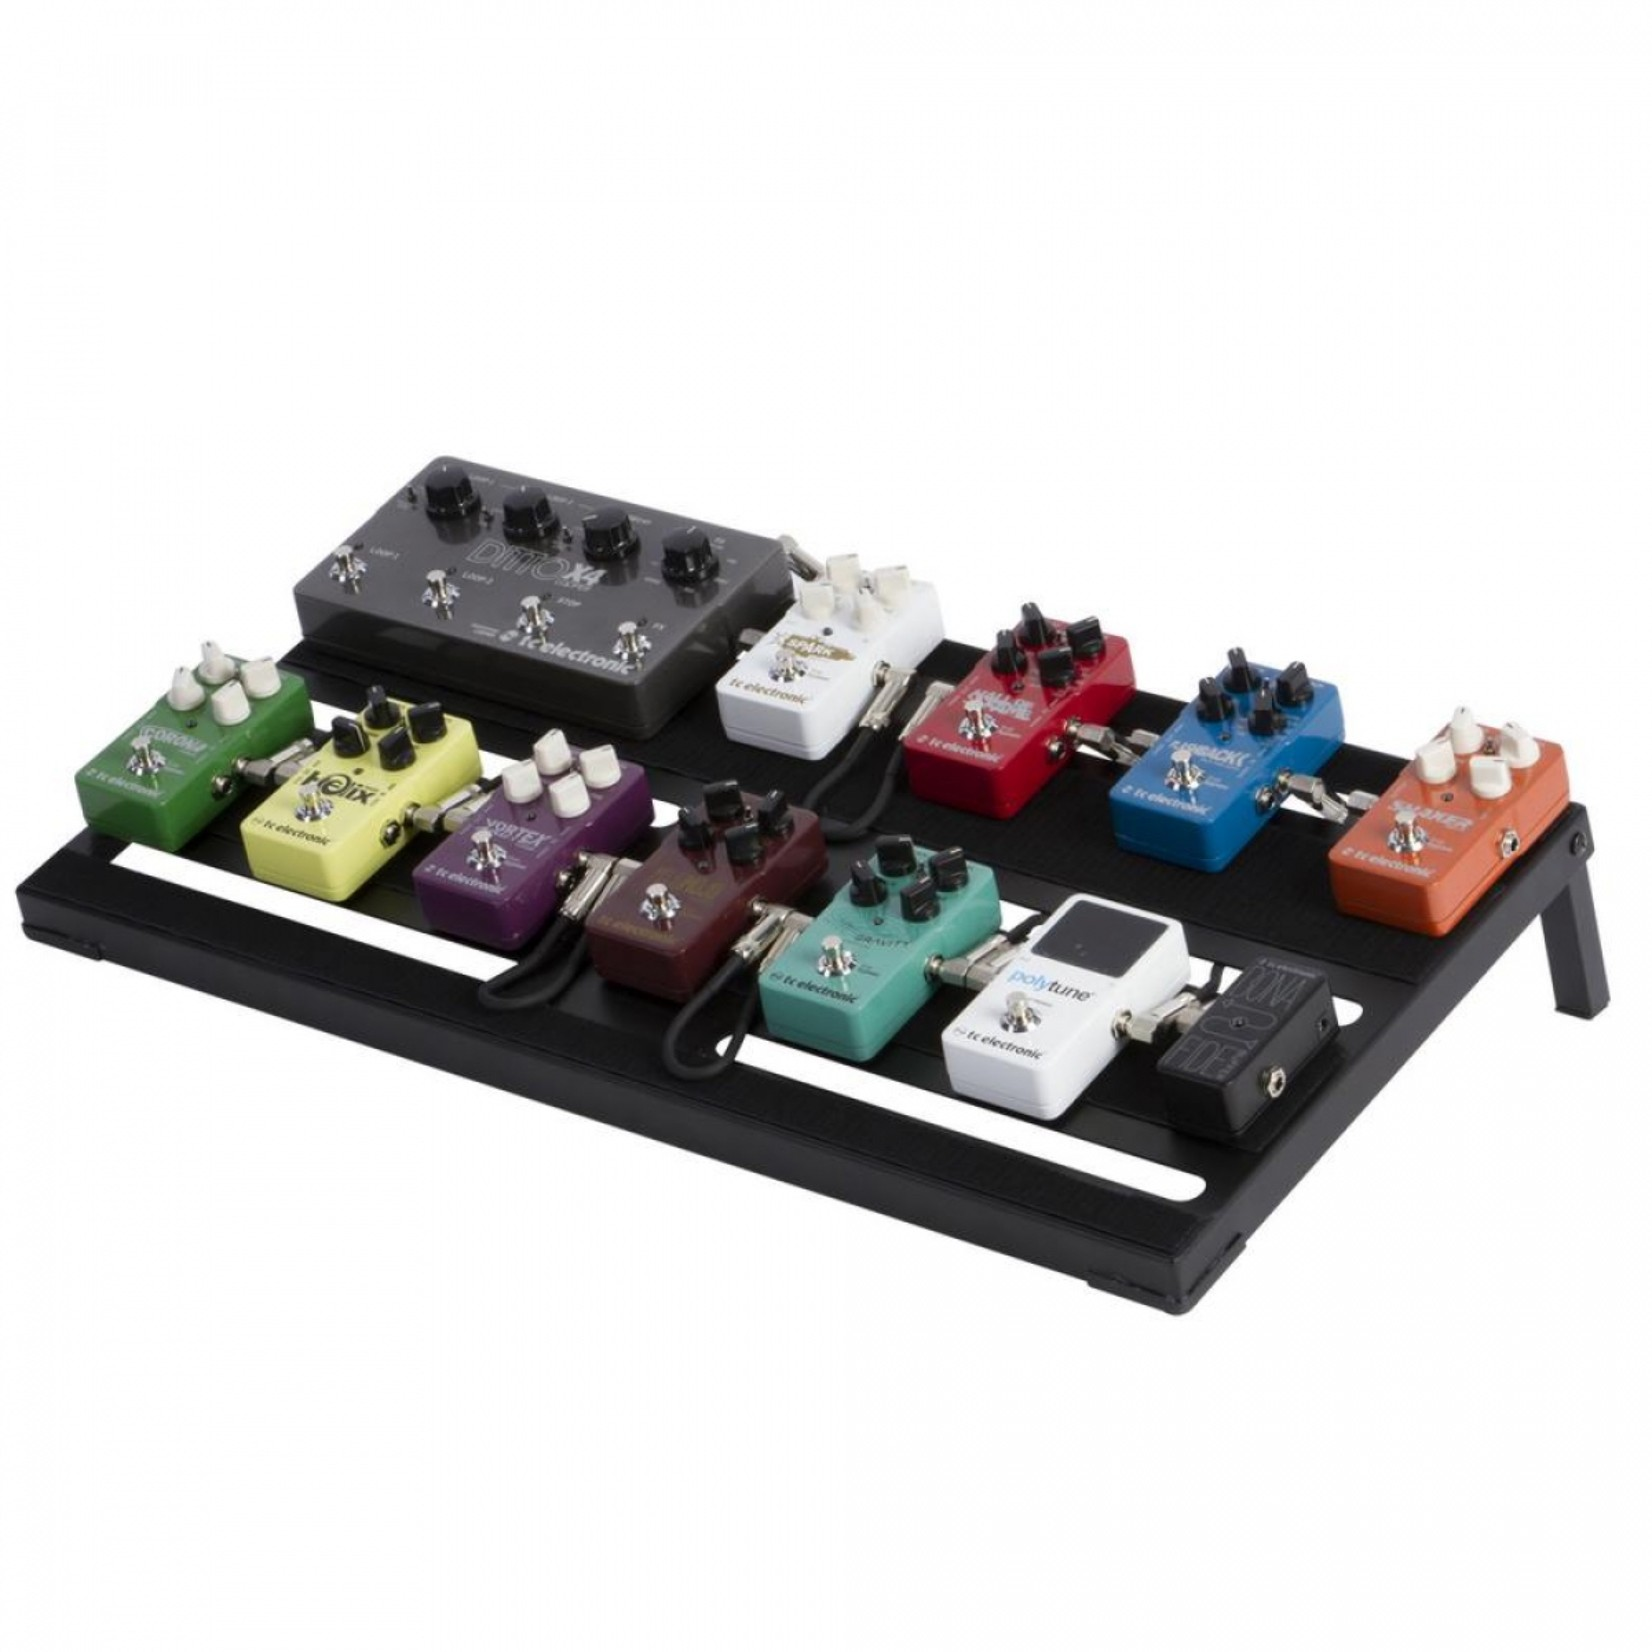 On-Stage On-Stage GPB4000 Guitar/Keyboard Pedal Board